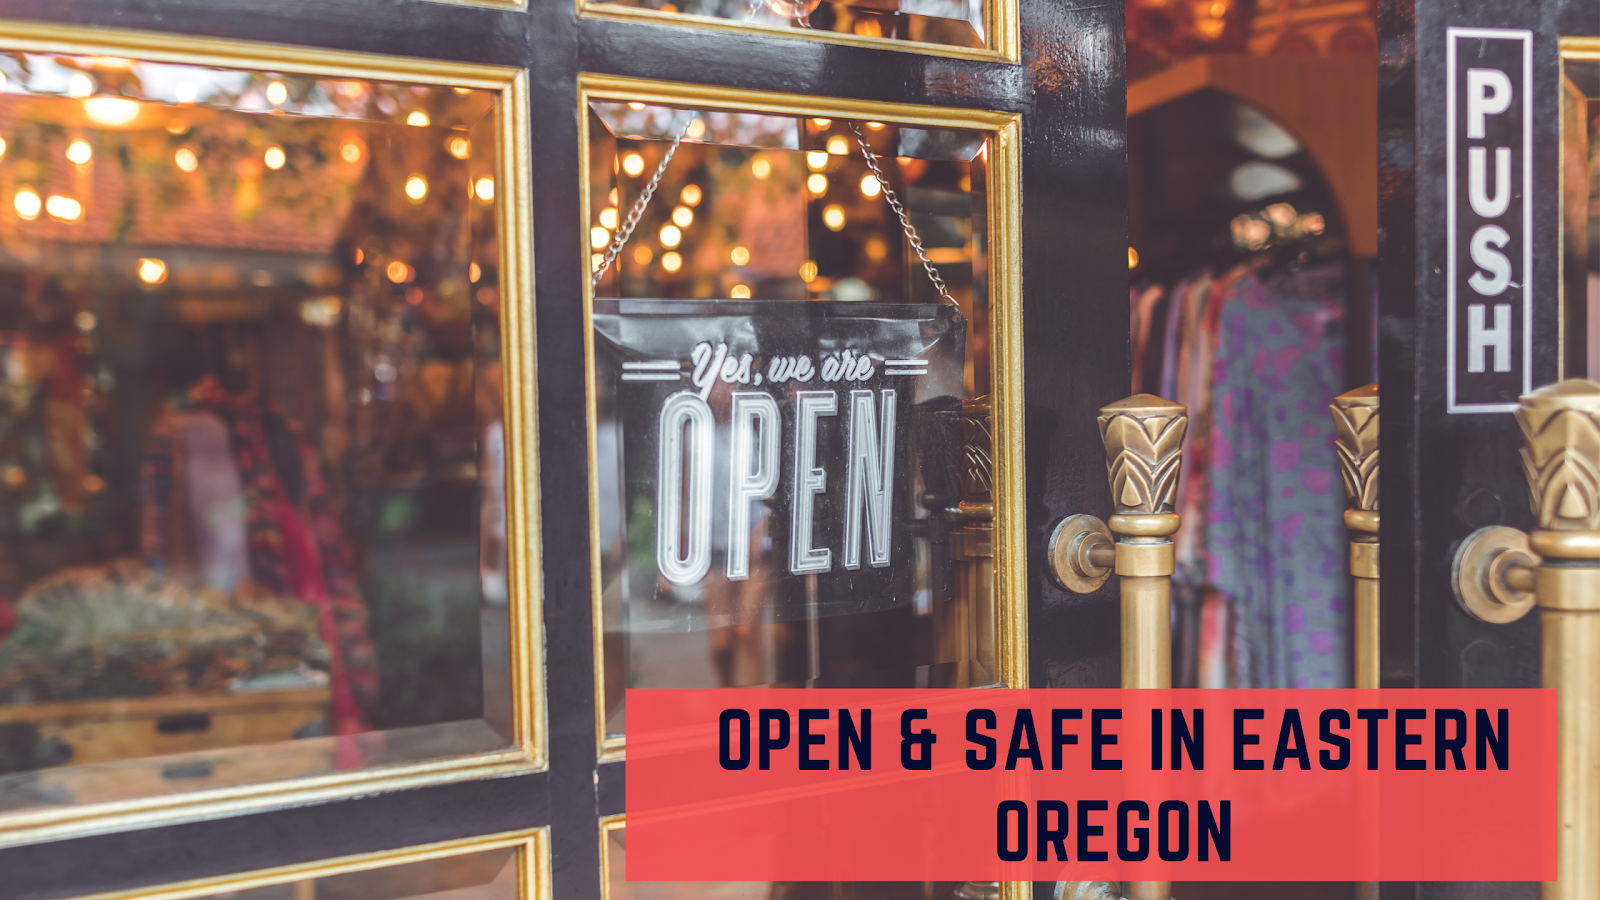 Rural Main Street Offers Safe & Affordable Options for Small Businesses Main Photo